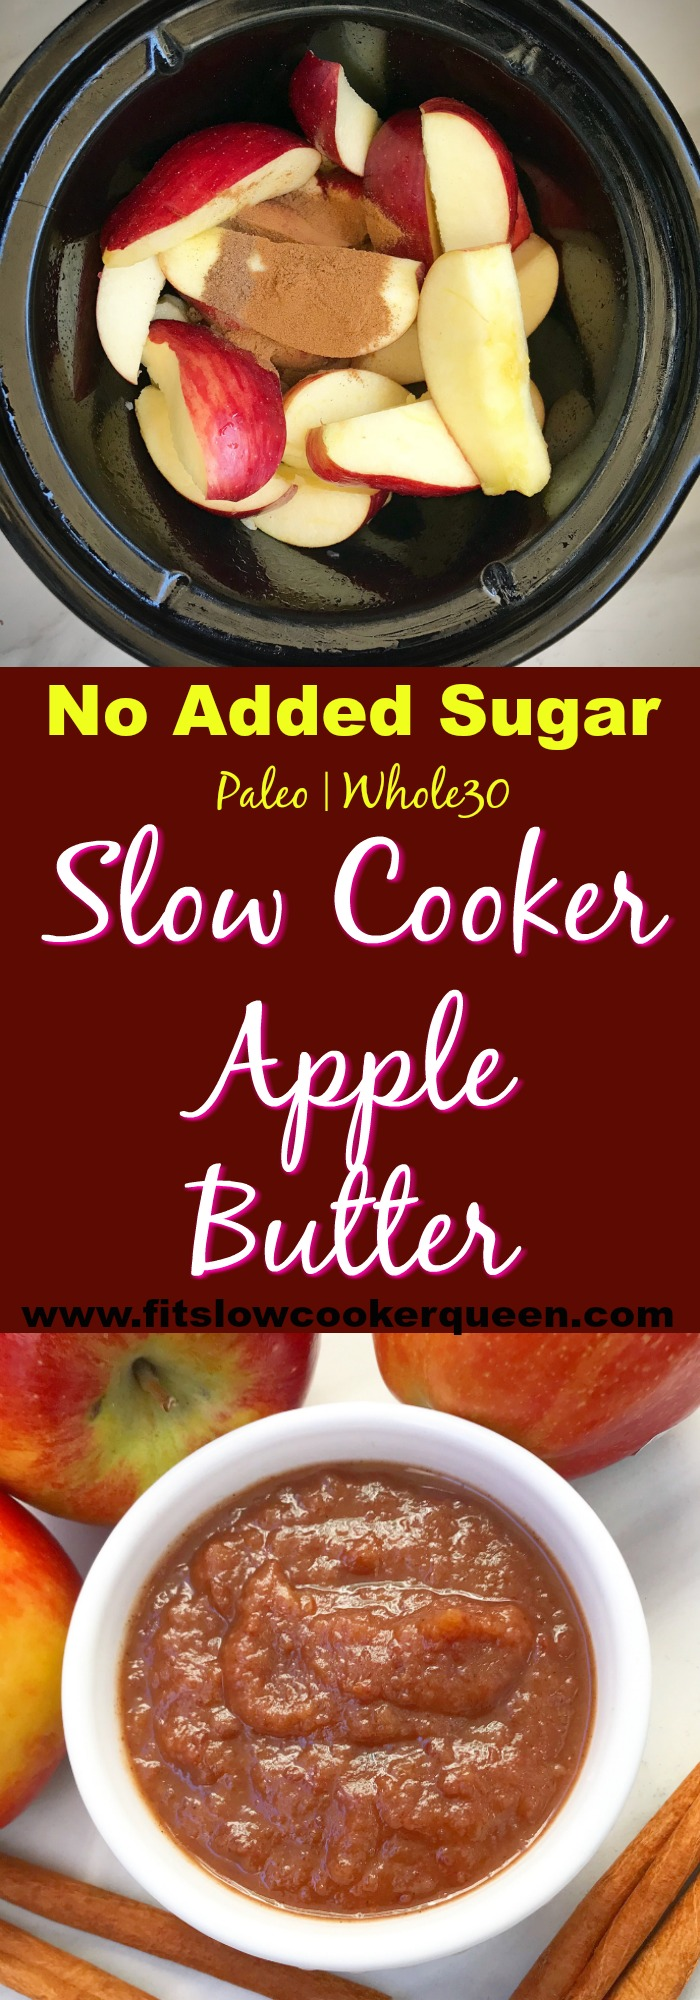 This healthy slow cooker apple butter recipe has NO ADDED SUGAR making it whole30 and paleo compliant while still being super easy.